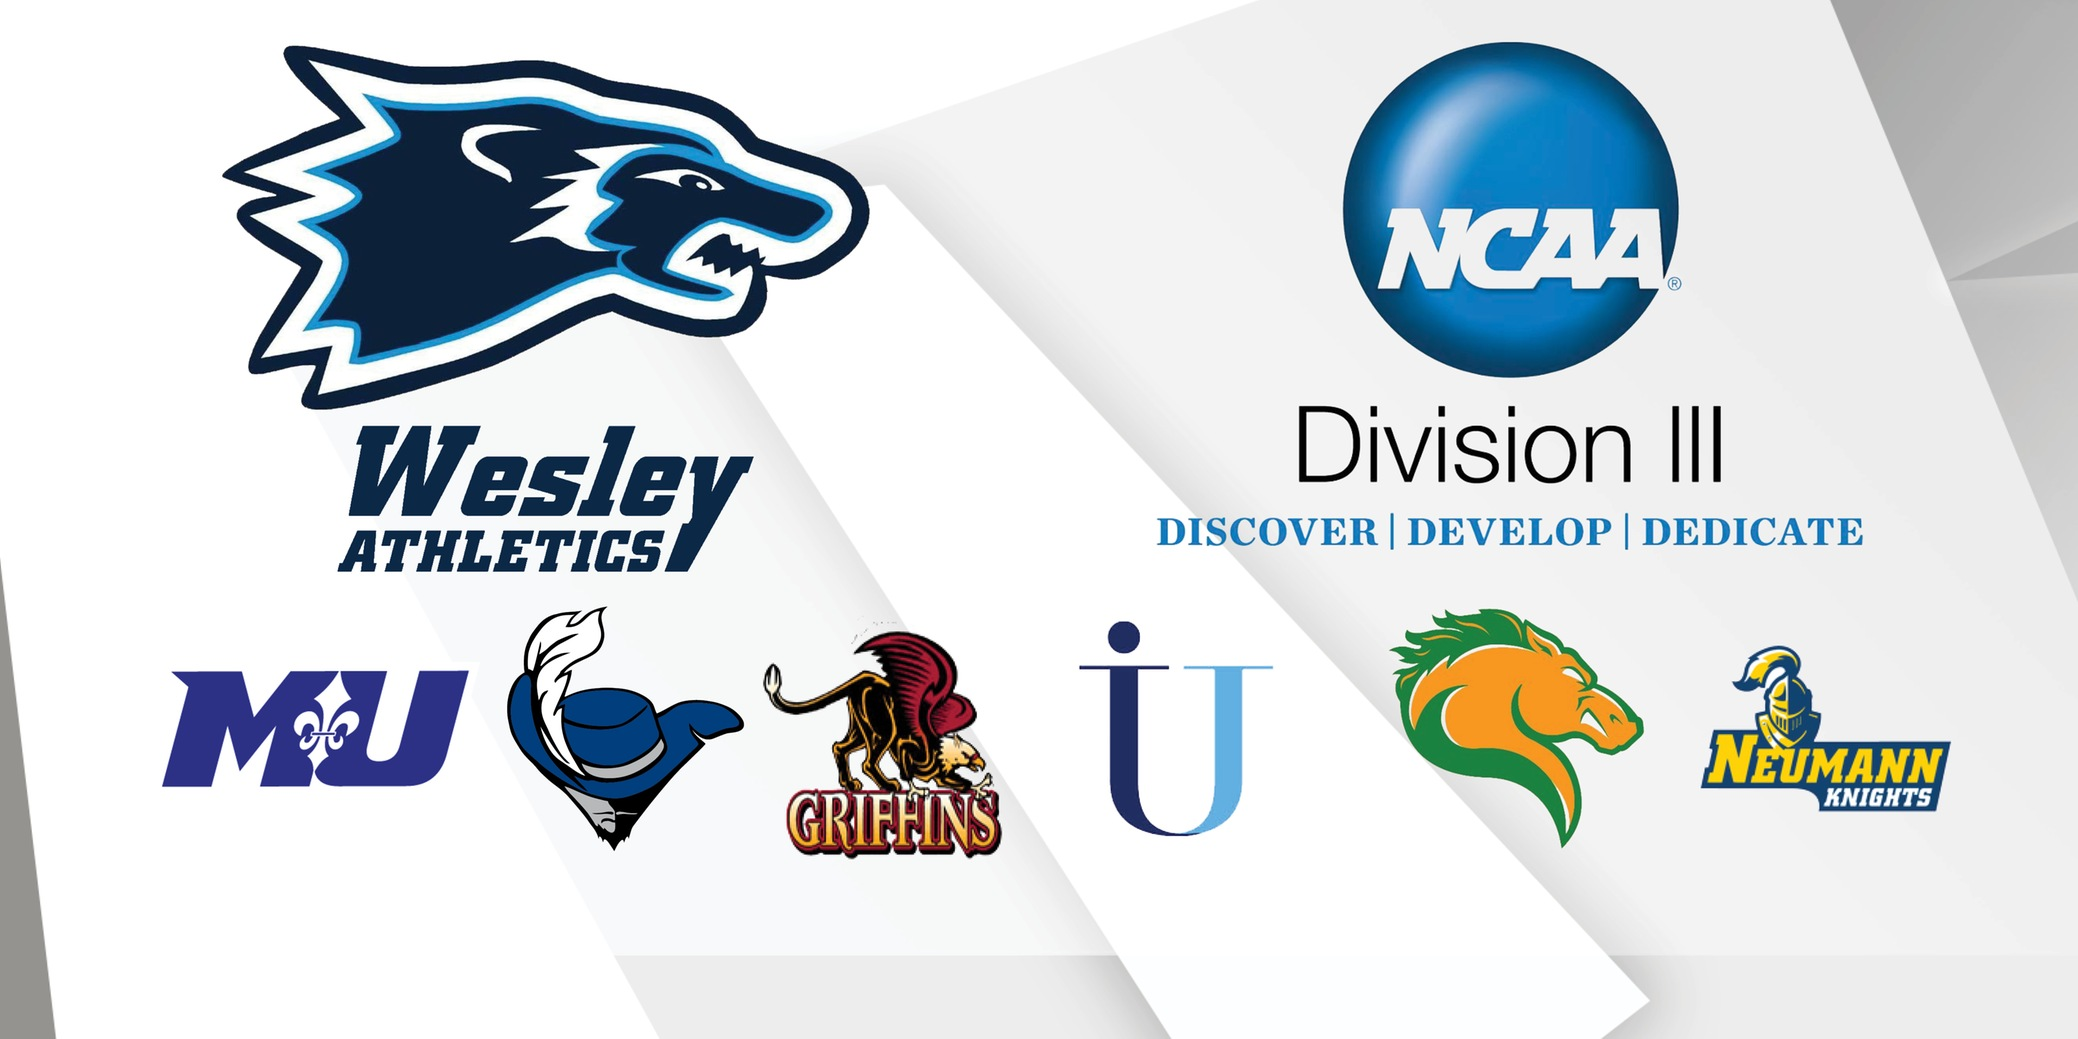 Wesley College among seven regional institutions to form Atlantic East Conference